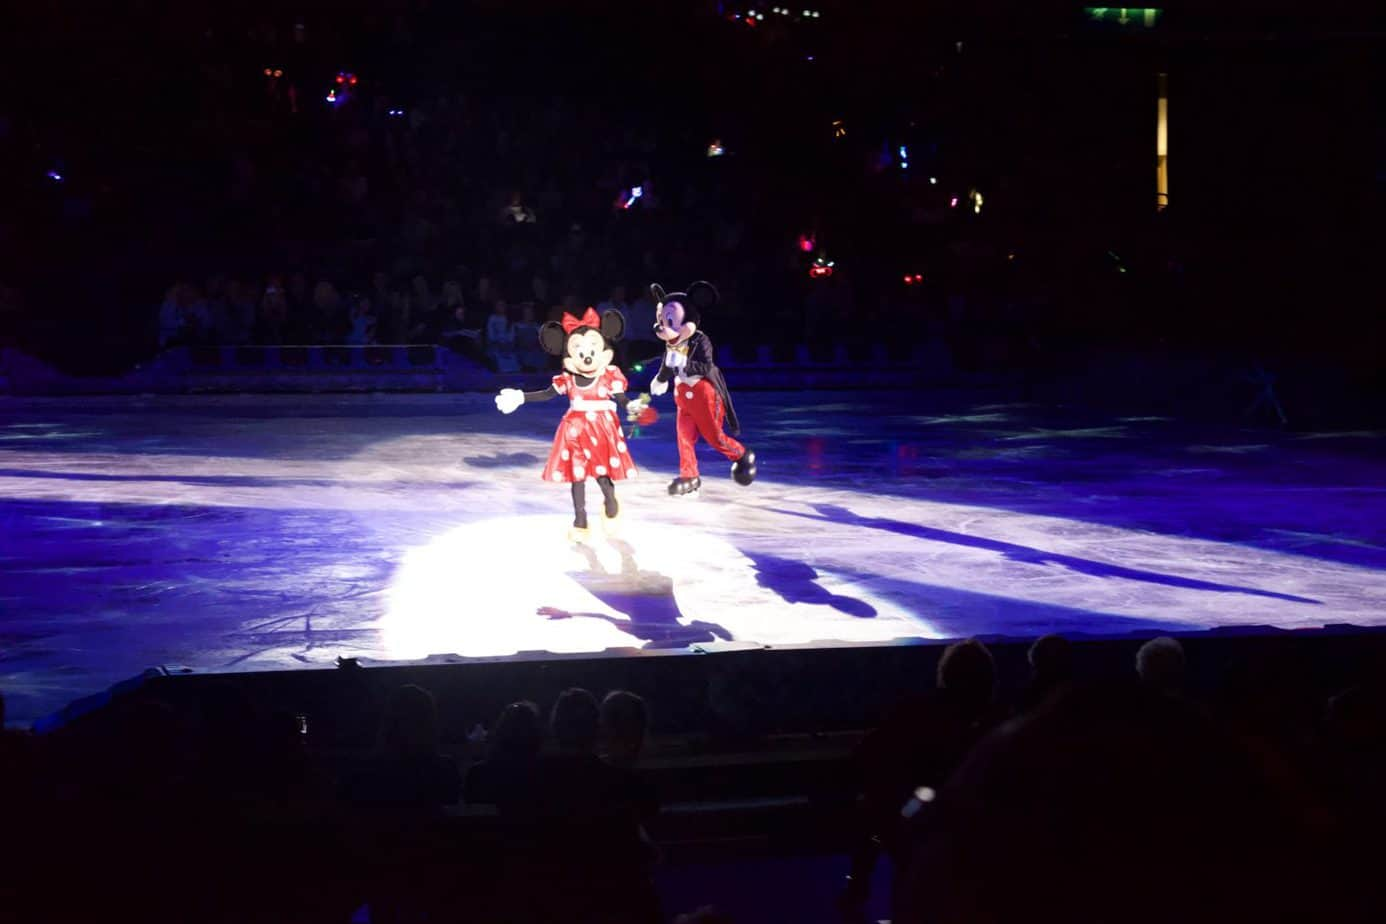 Mickey mouse and Minnie mouse who led the show of Disney on ice